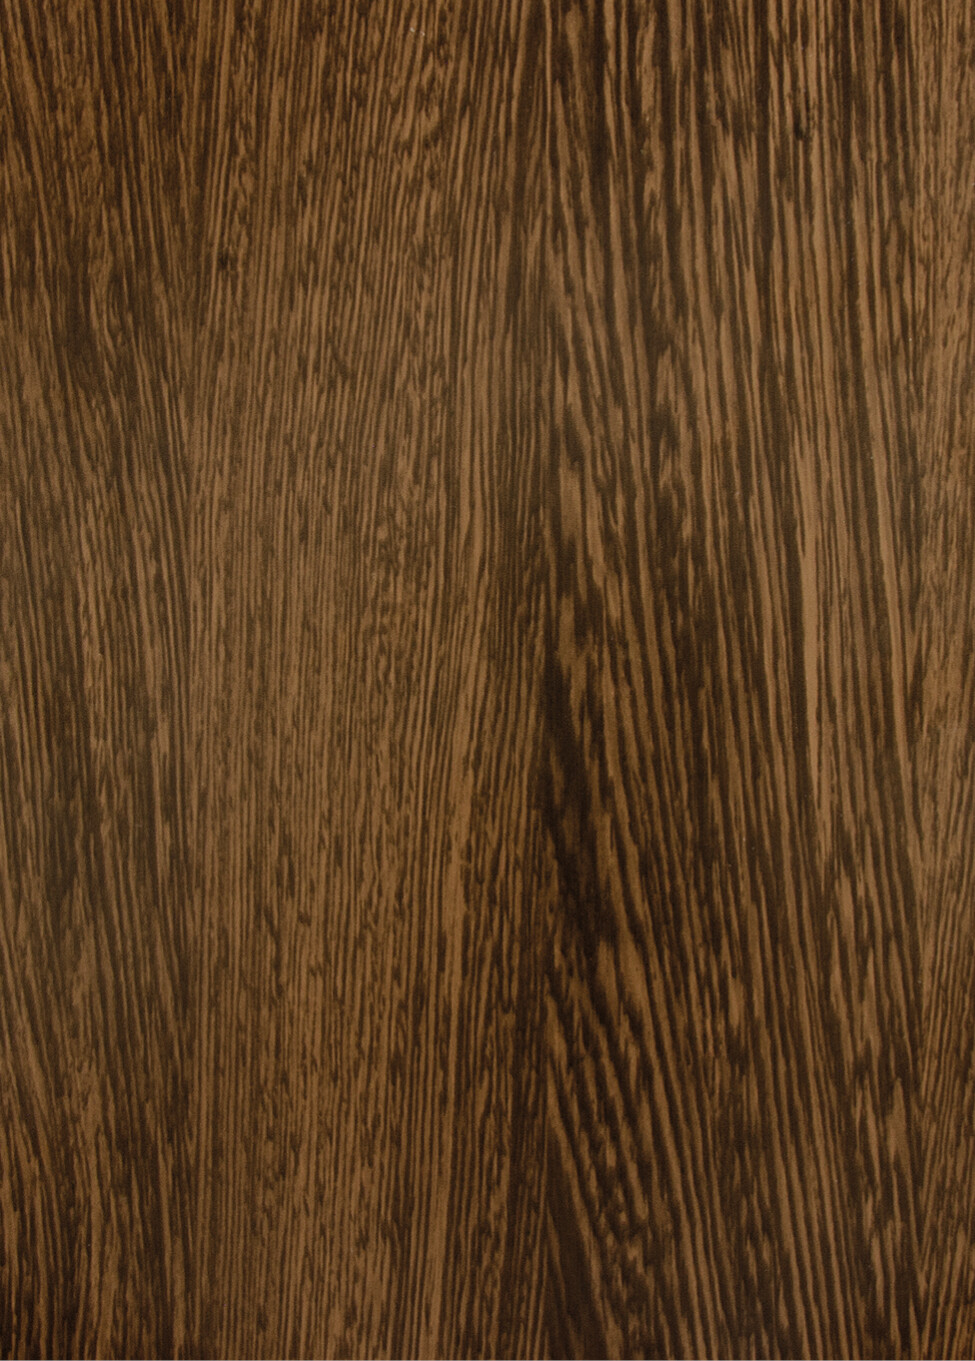 colofer® vario wenge